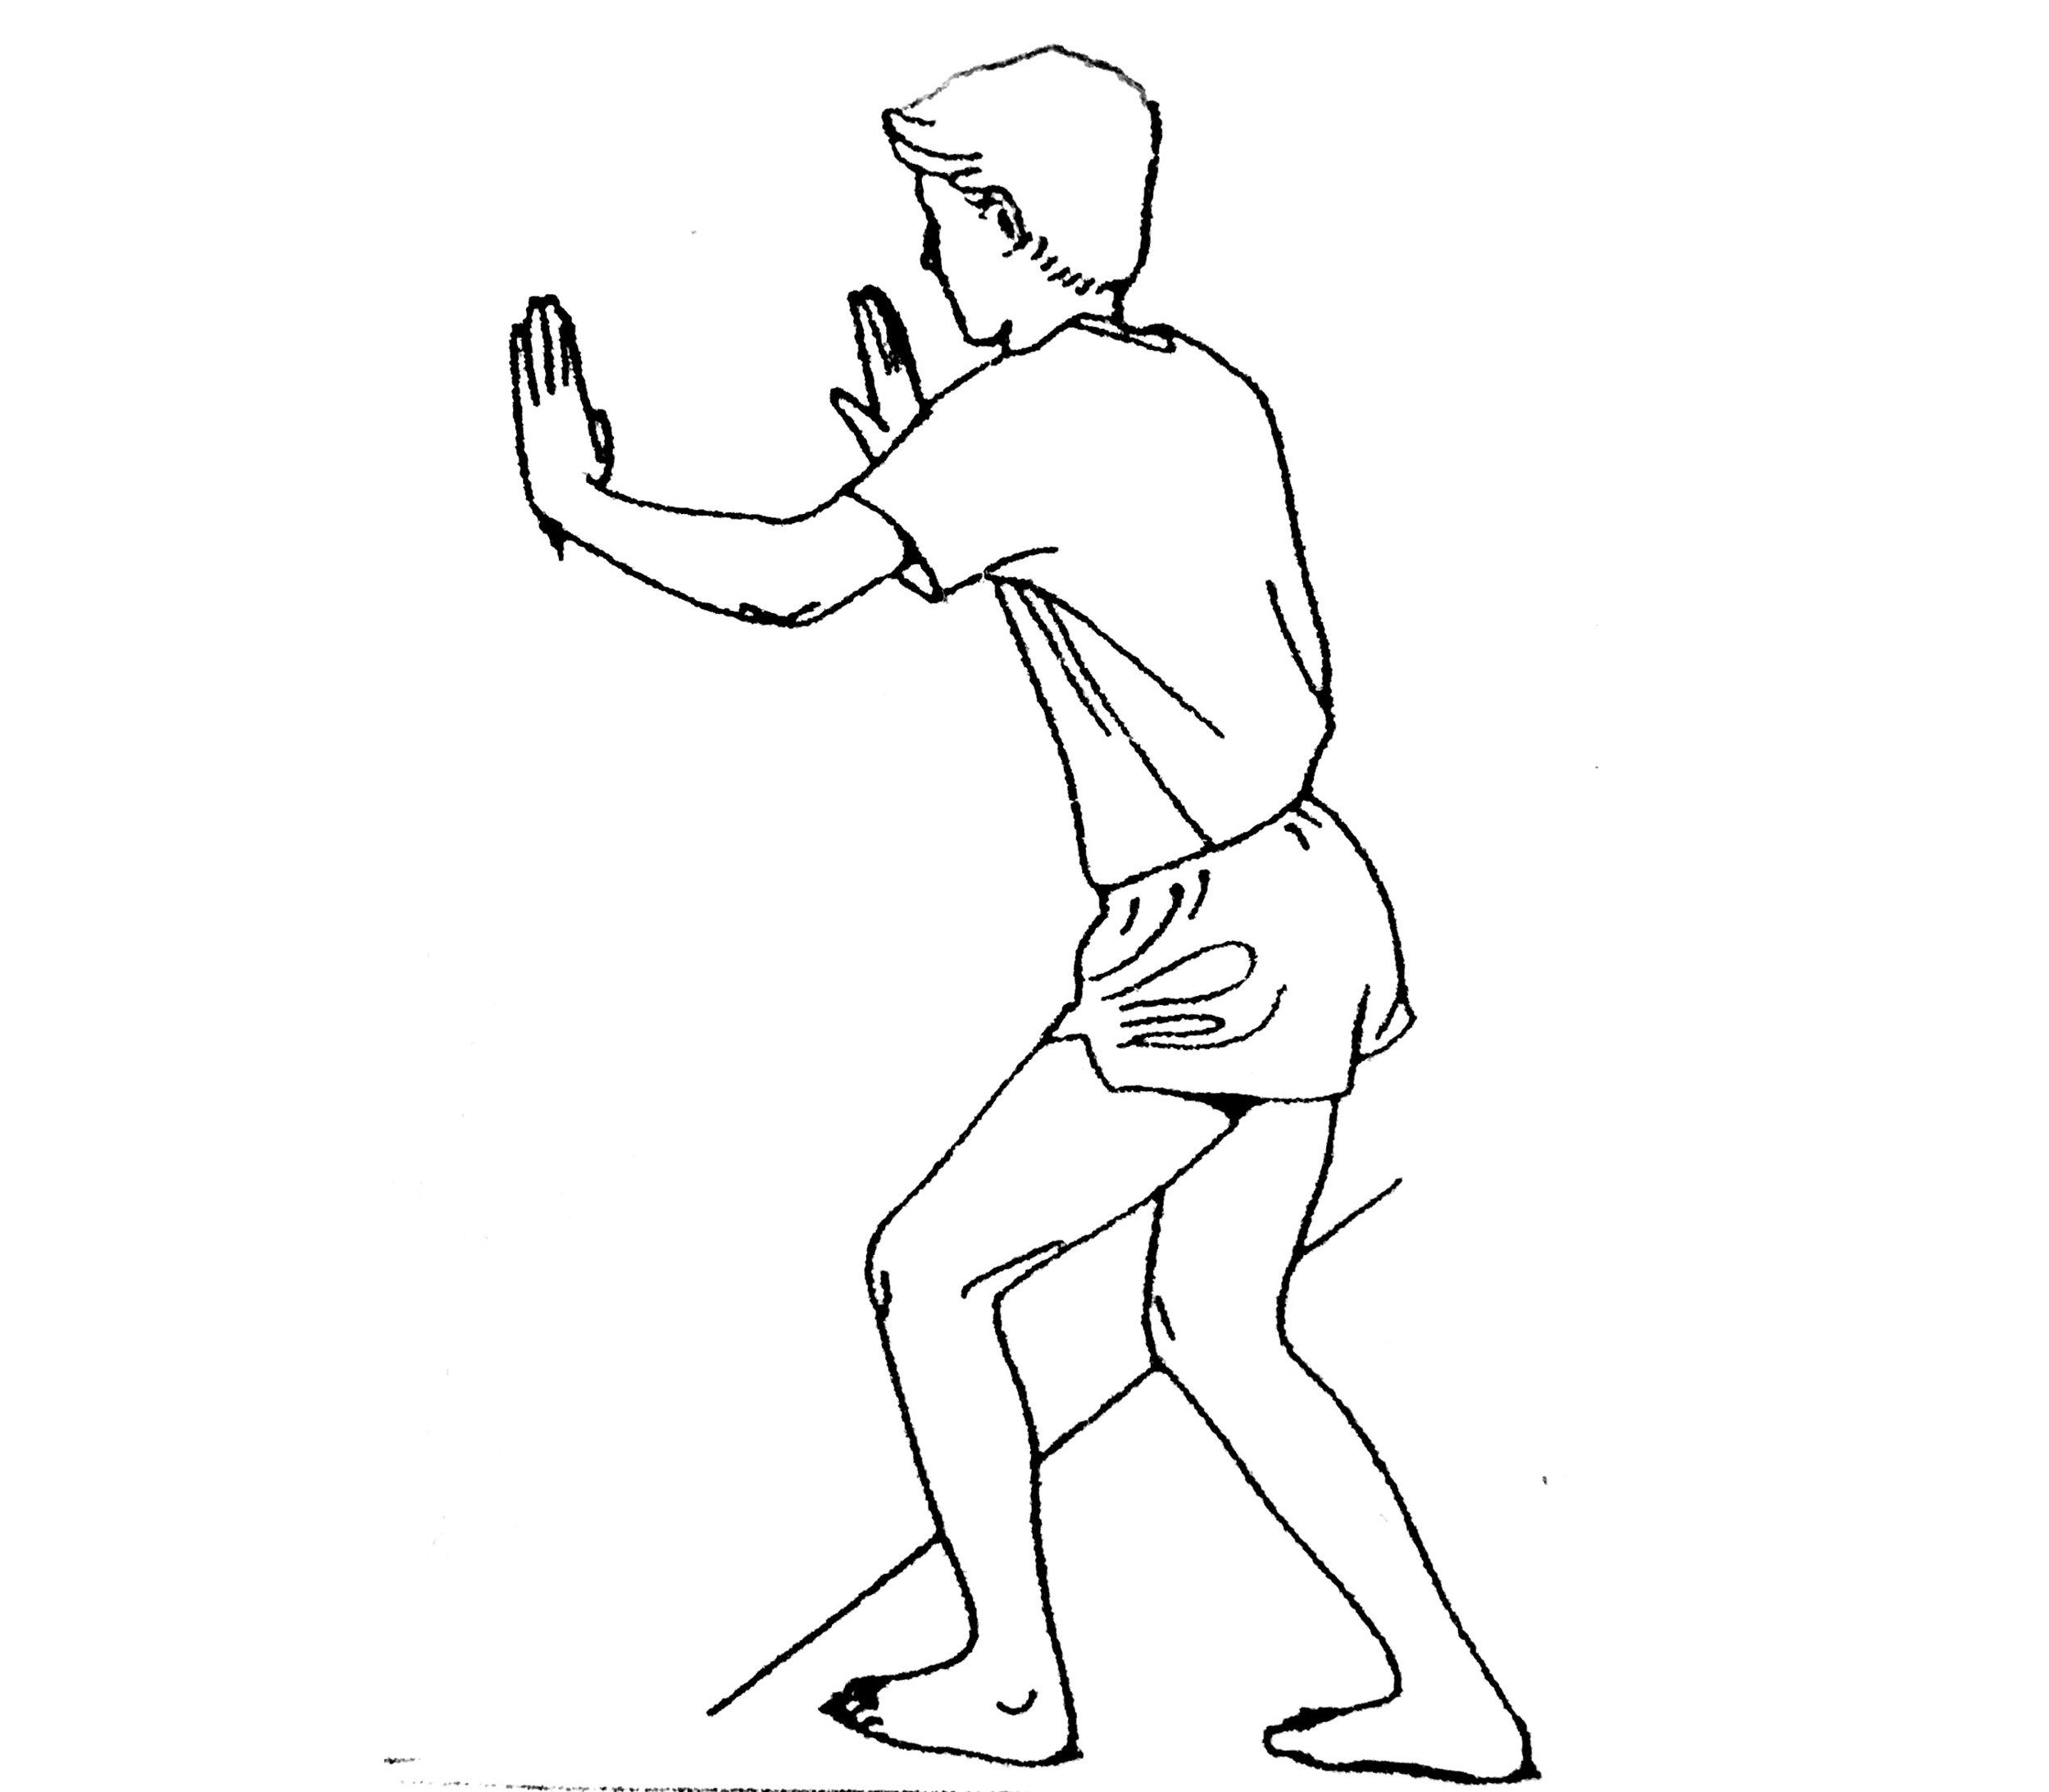 Standing with hands on the wall in front of you, bend your left knee as far as you can until you feel a pull on your left Achilles tendon. Try to bear some of your body weight on your right leg so the stretch is more passive on the left. When doing this stretch try to keep your kneecap over your toes and your arch pulled up. Hold for 30 seconds. Repeat 3 times. Try to do this stretch throughout the day, every couple of hours, even if it is just one stretch.